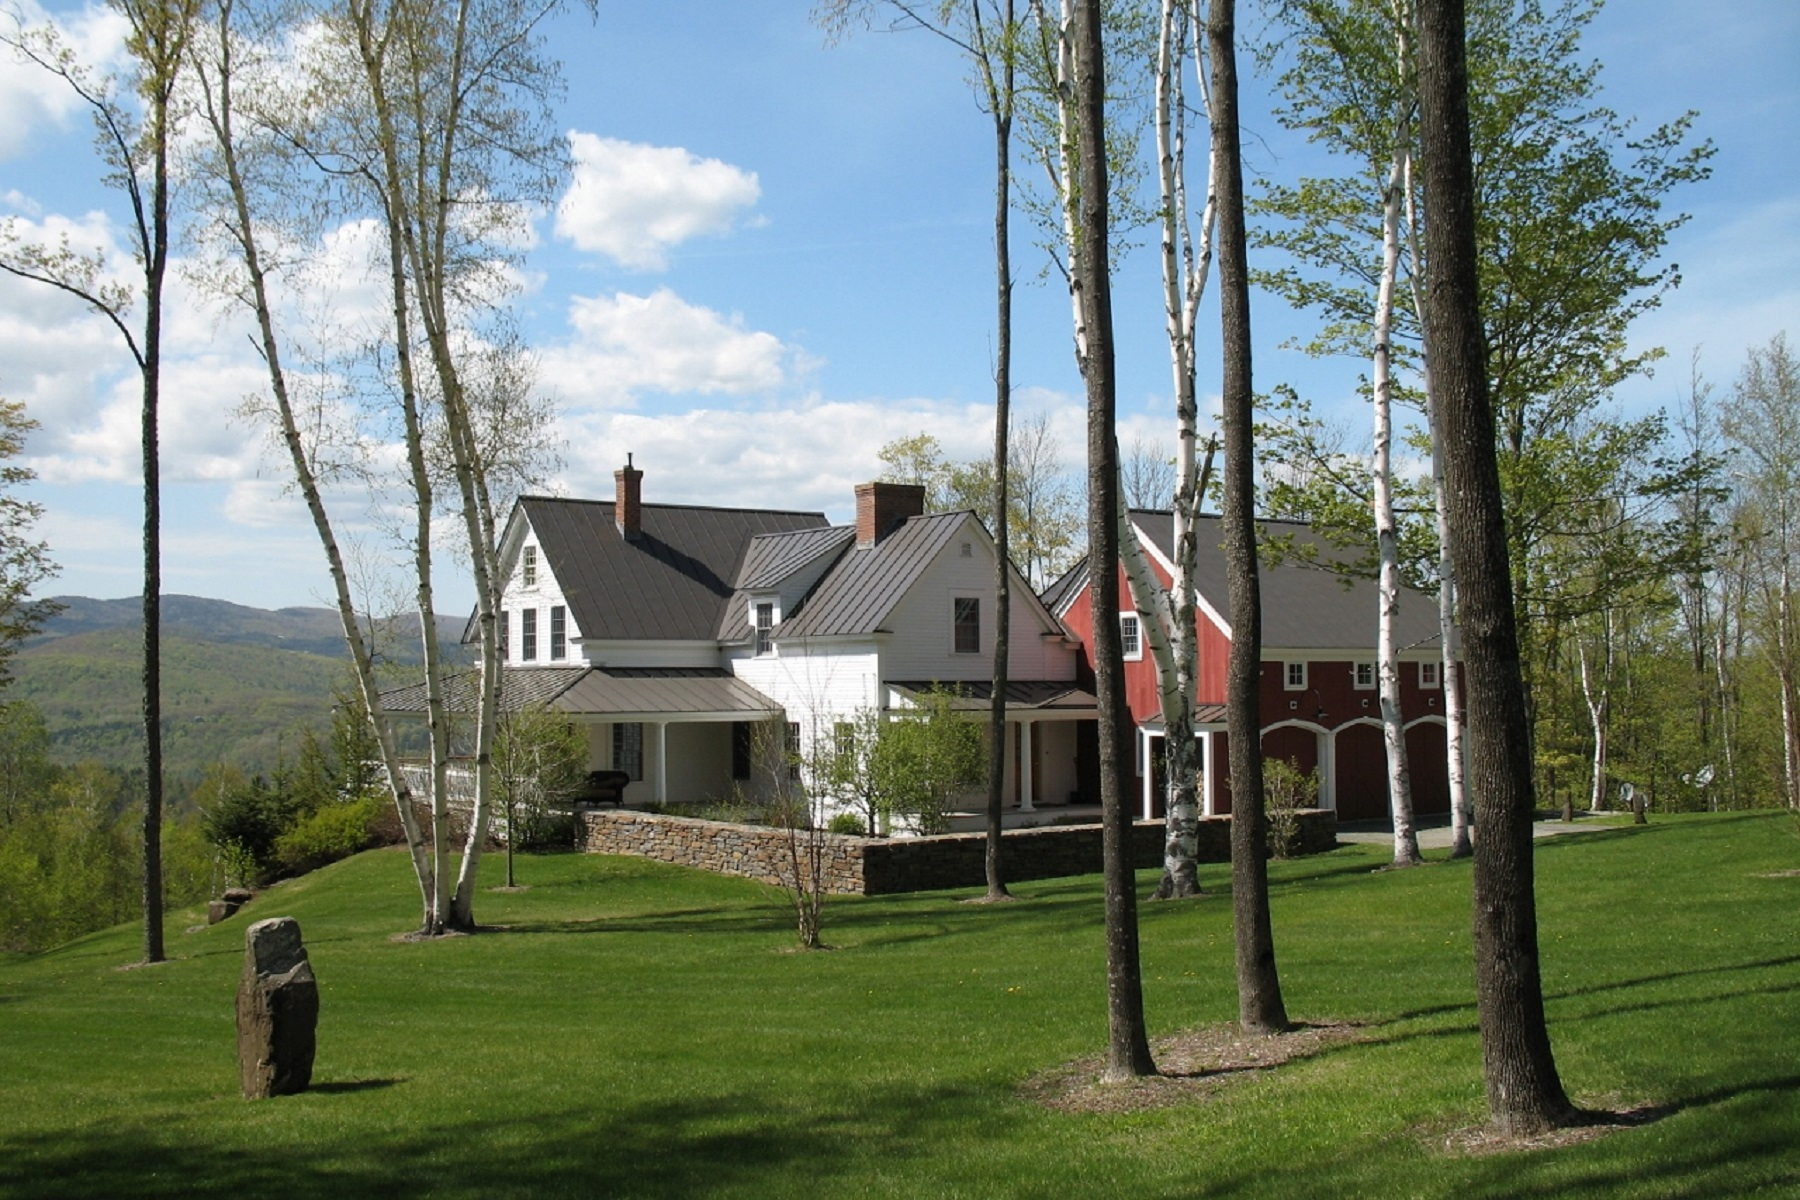 Single Family Home for Sale at Sweeping Views Over Woodstock 779 Peterkin Hill Road Woodstock, Vermont, 05091 United States